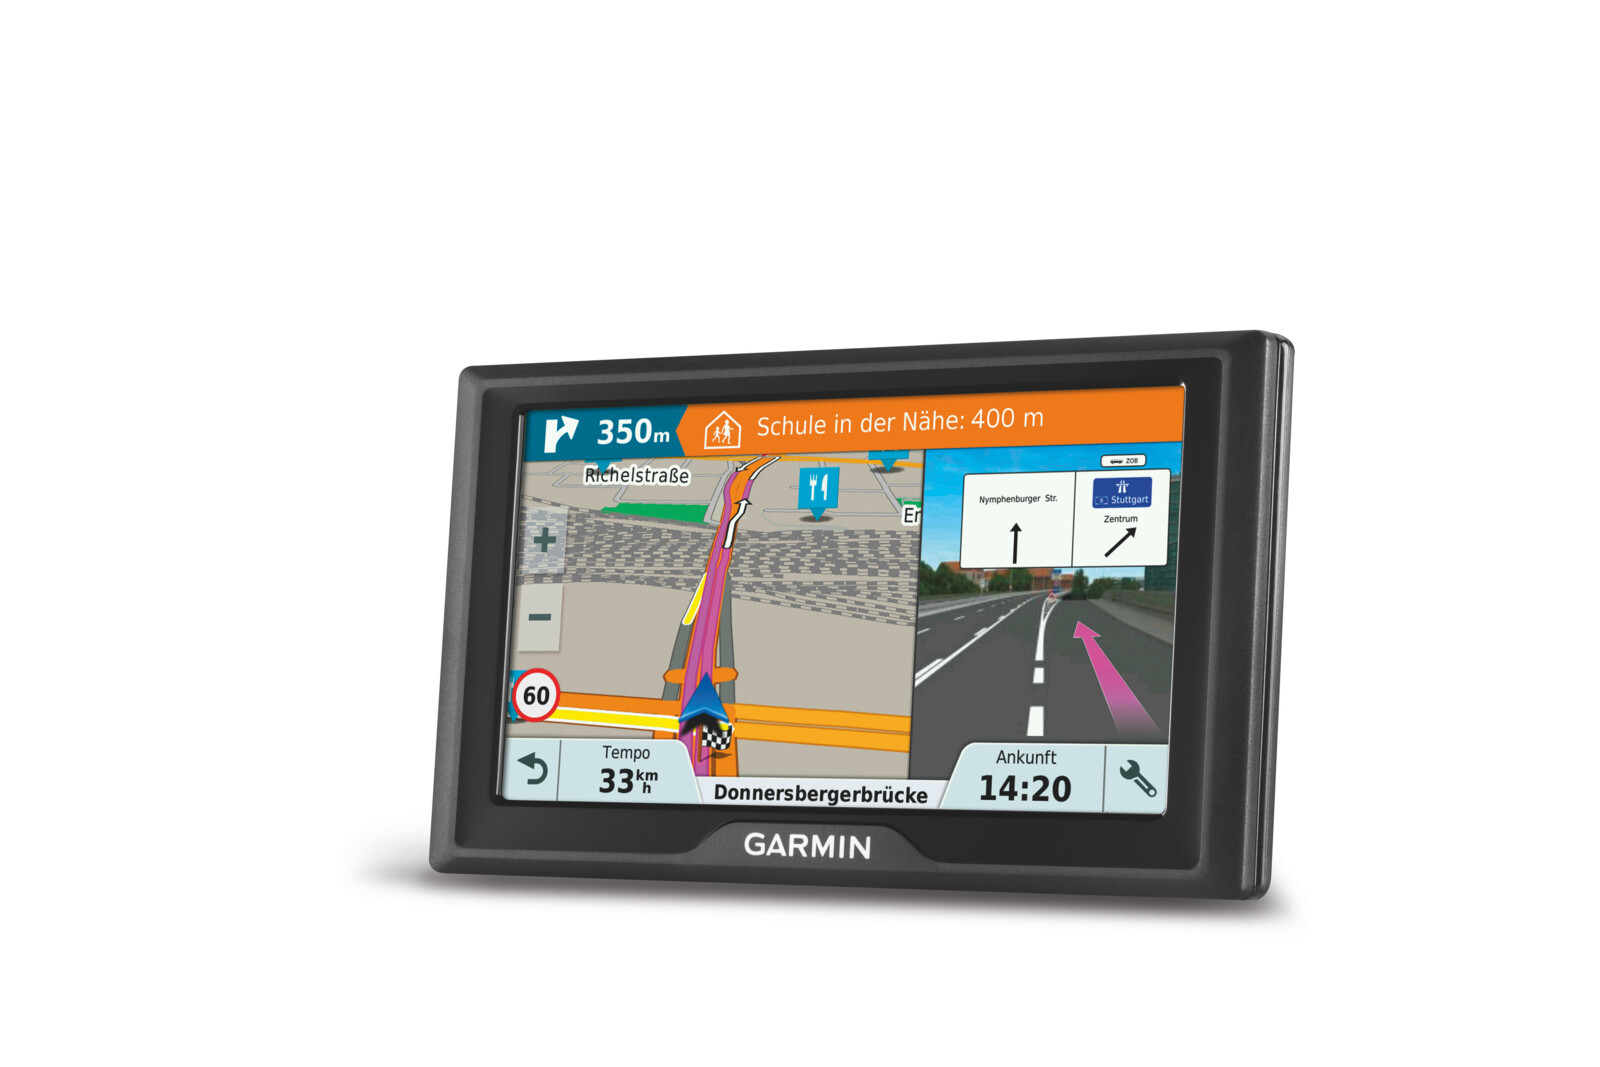 garmin drive 61 lmt s ce pkw navigationsger t 6 zoll. Black Bedroom Furniture Sets. Home Design Ideas